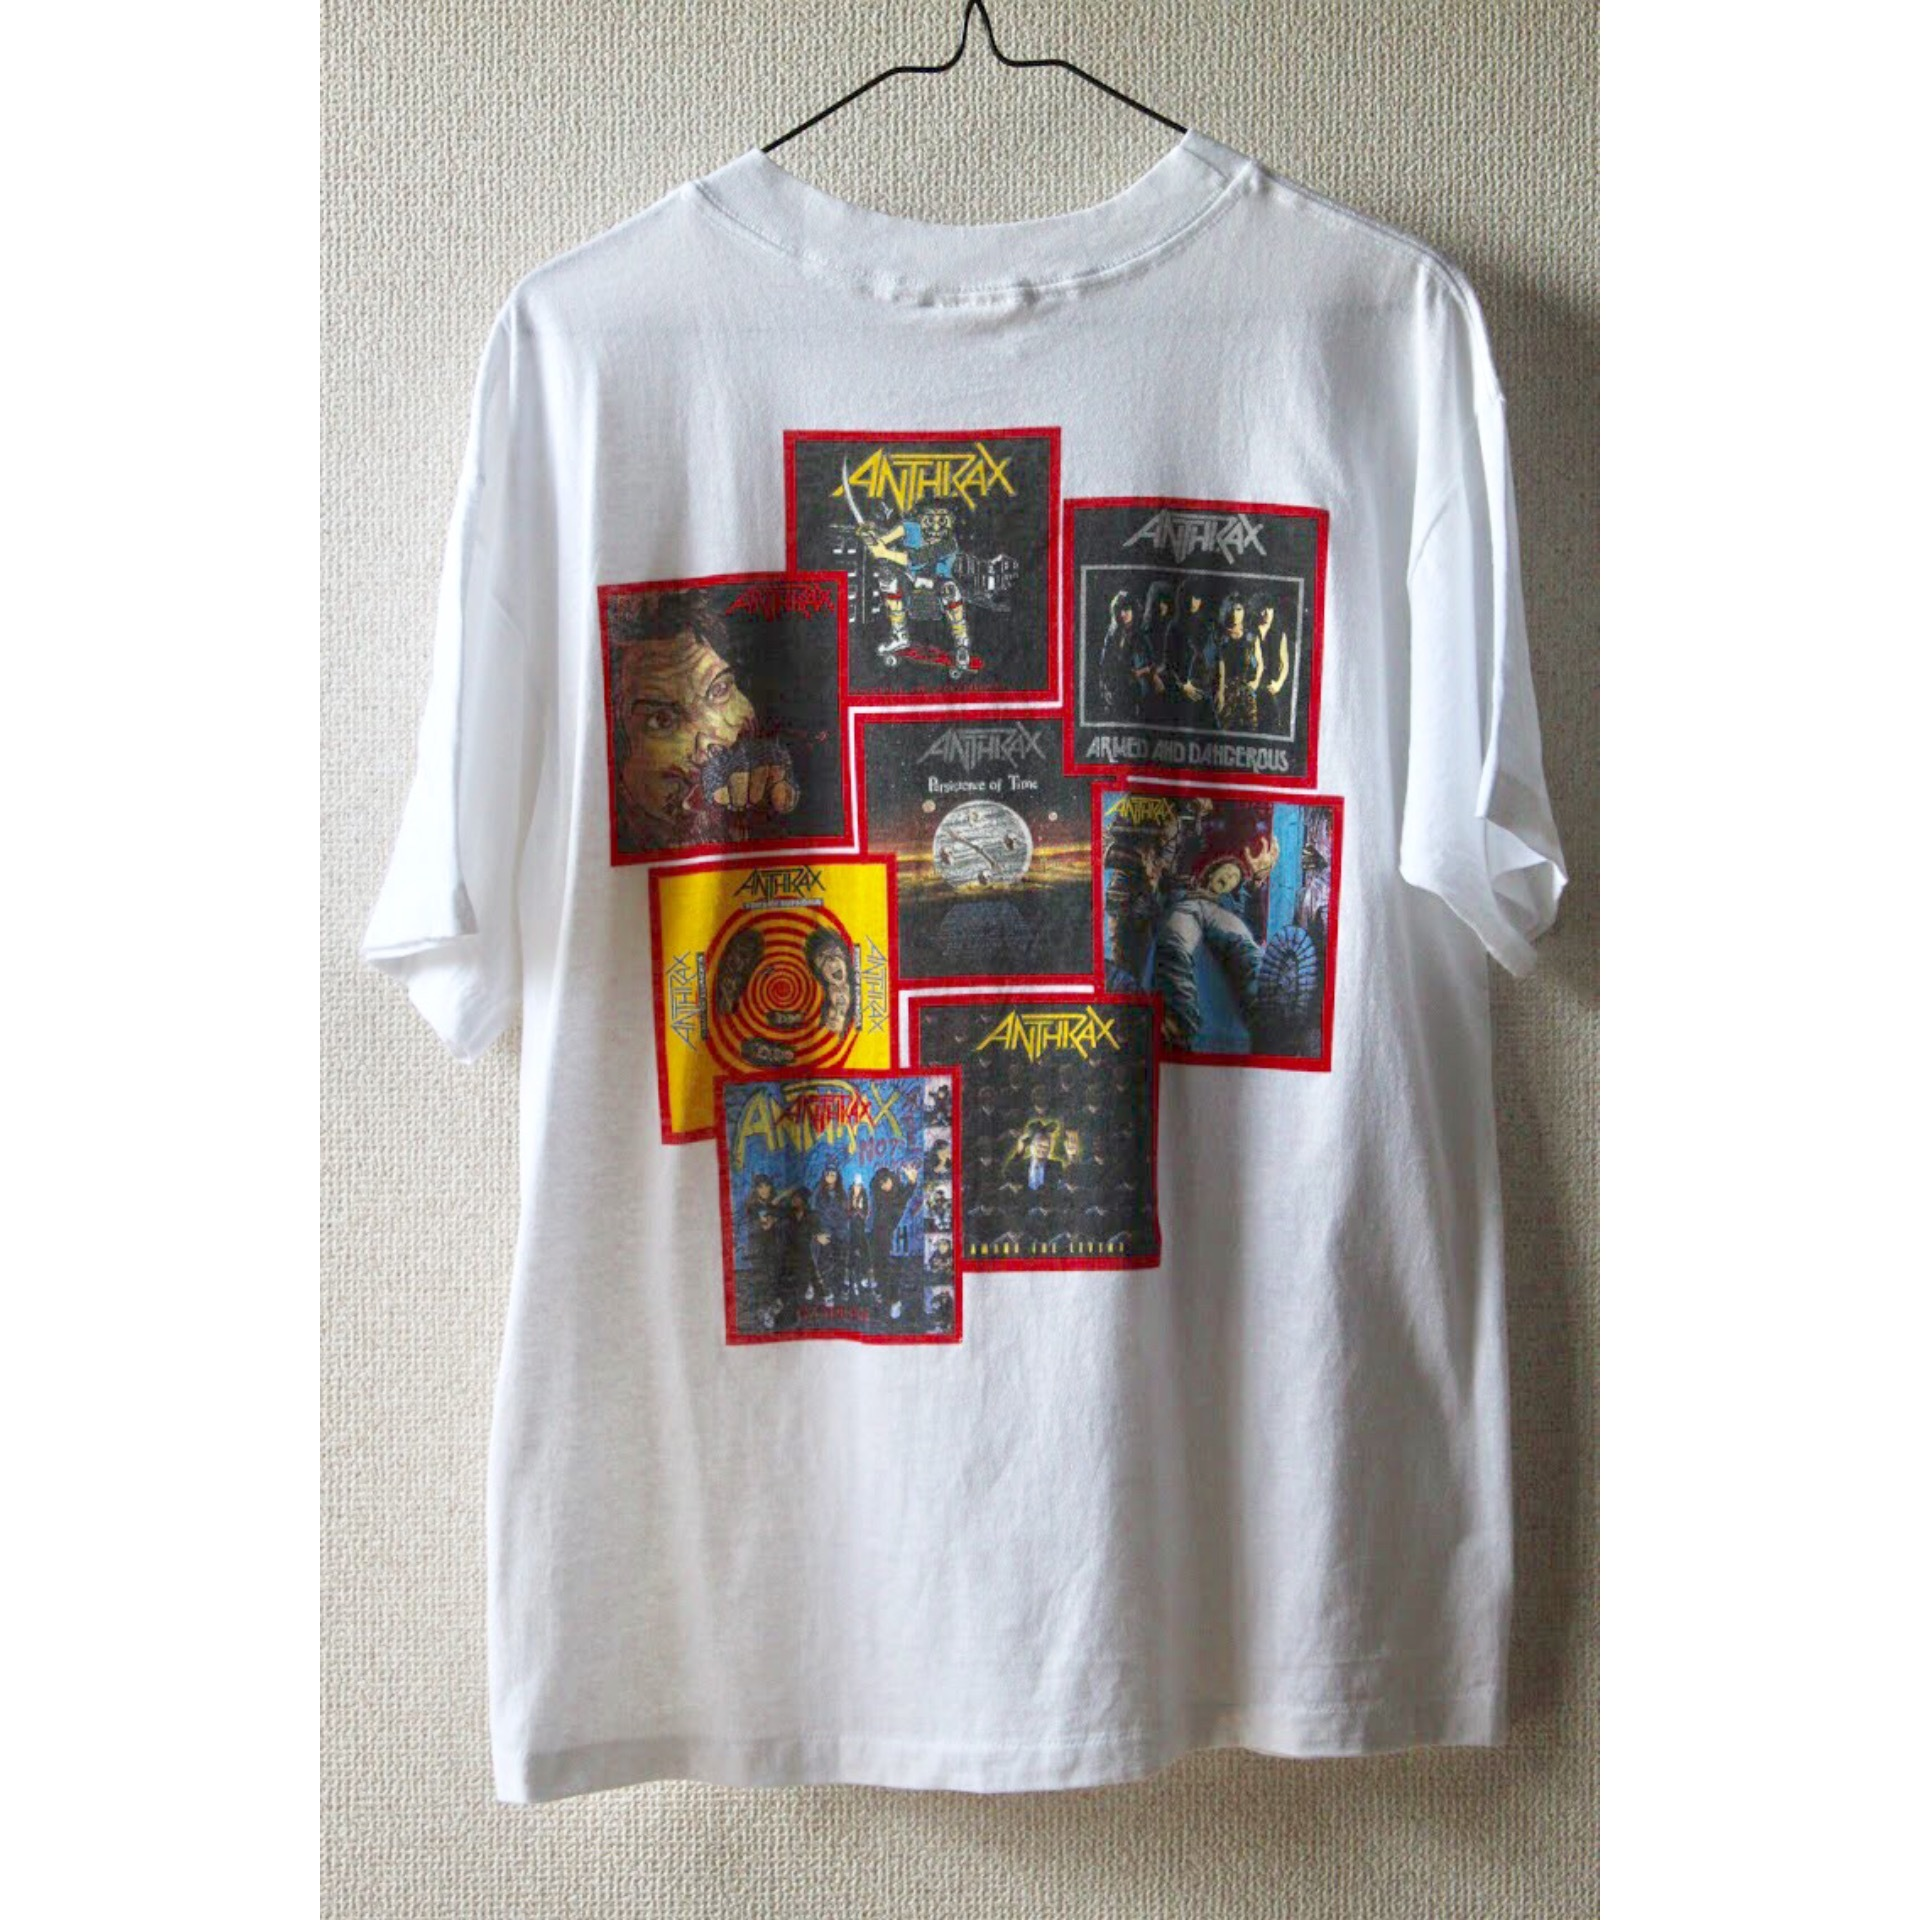 Vintage Anthrax t shirt